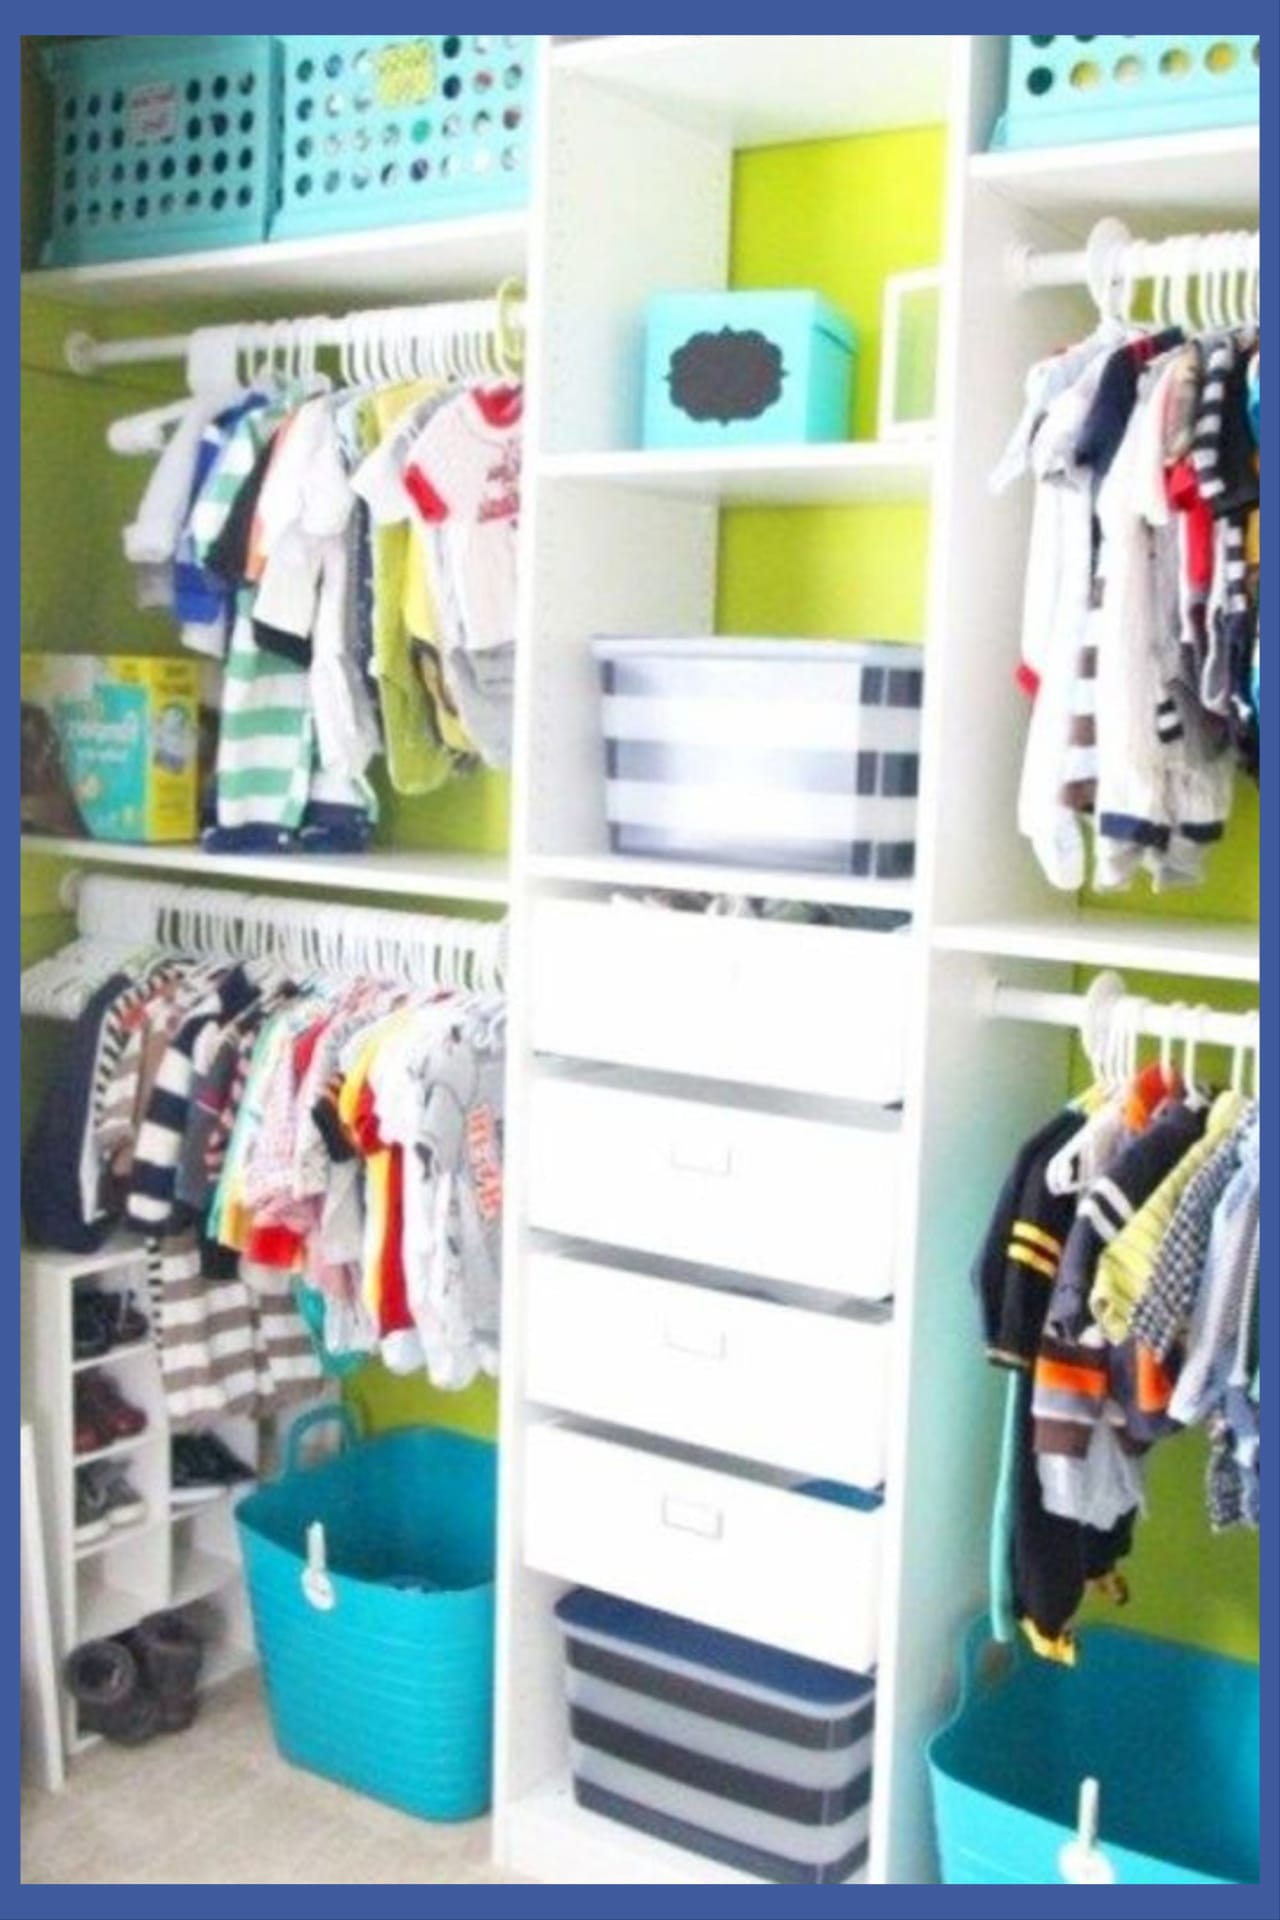 Organization Ideas for the Home - closet organization ideas - DIY baby closet organization and baby closthes organization ideas - creative nursery closet organization ideas